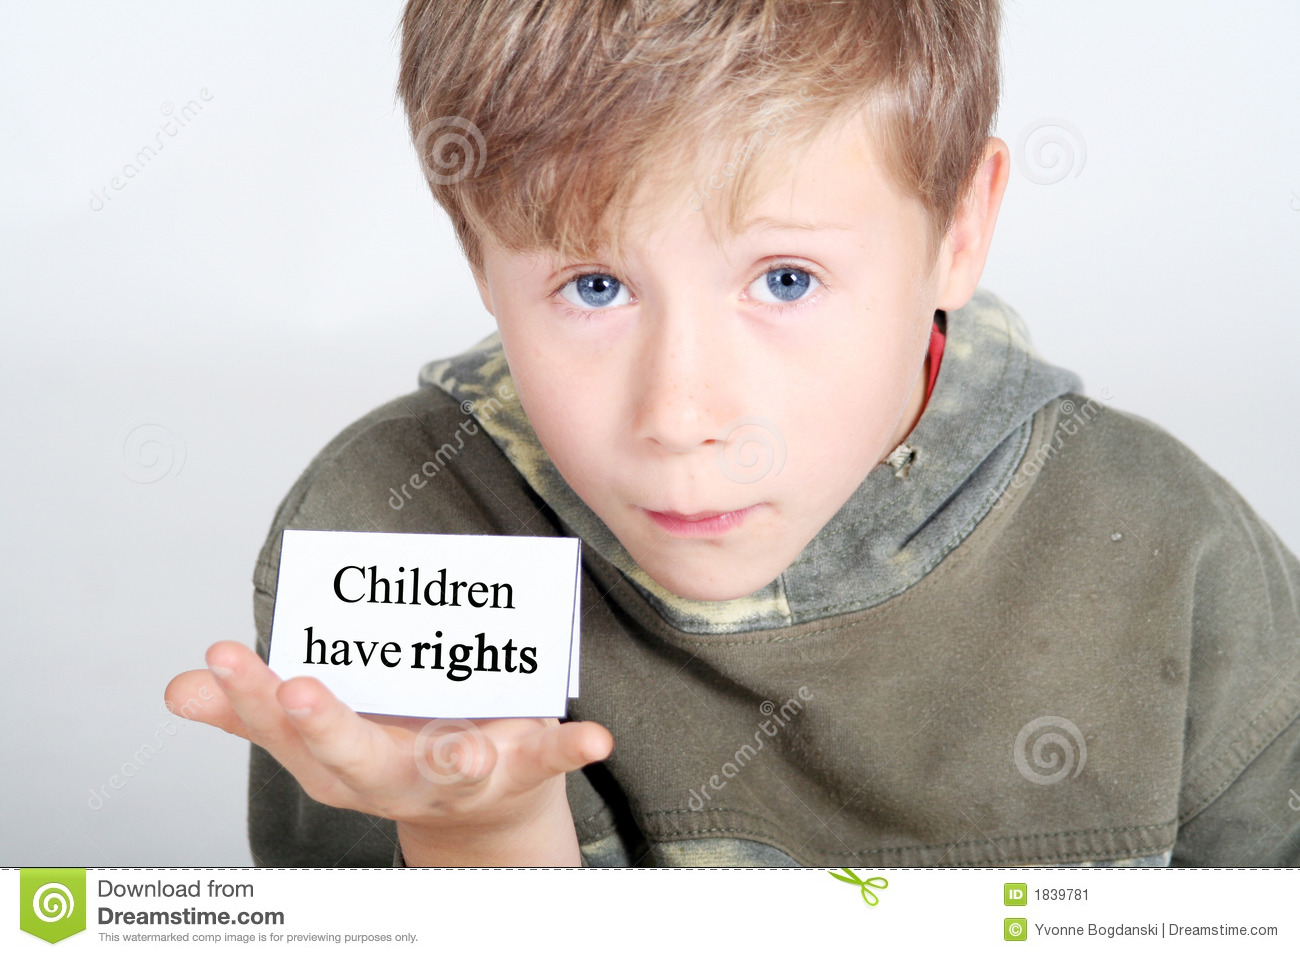 Children Have Rights Stock Image - Image: 1839781